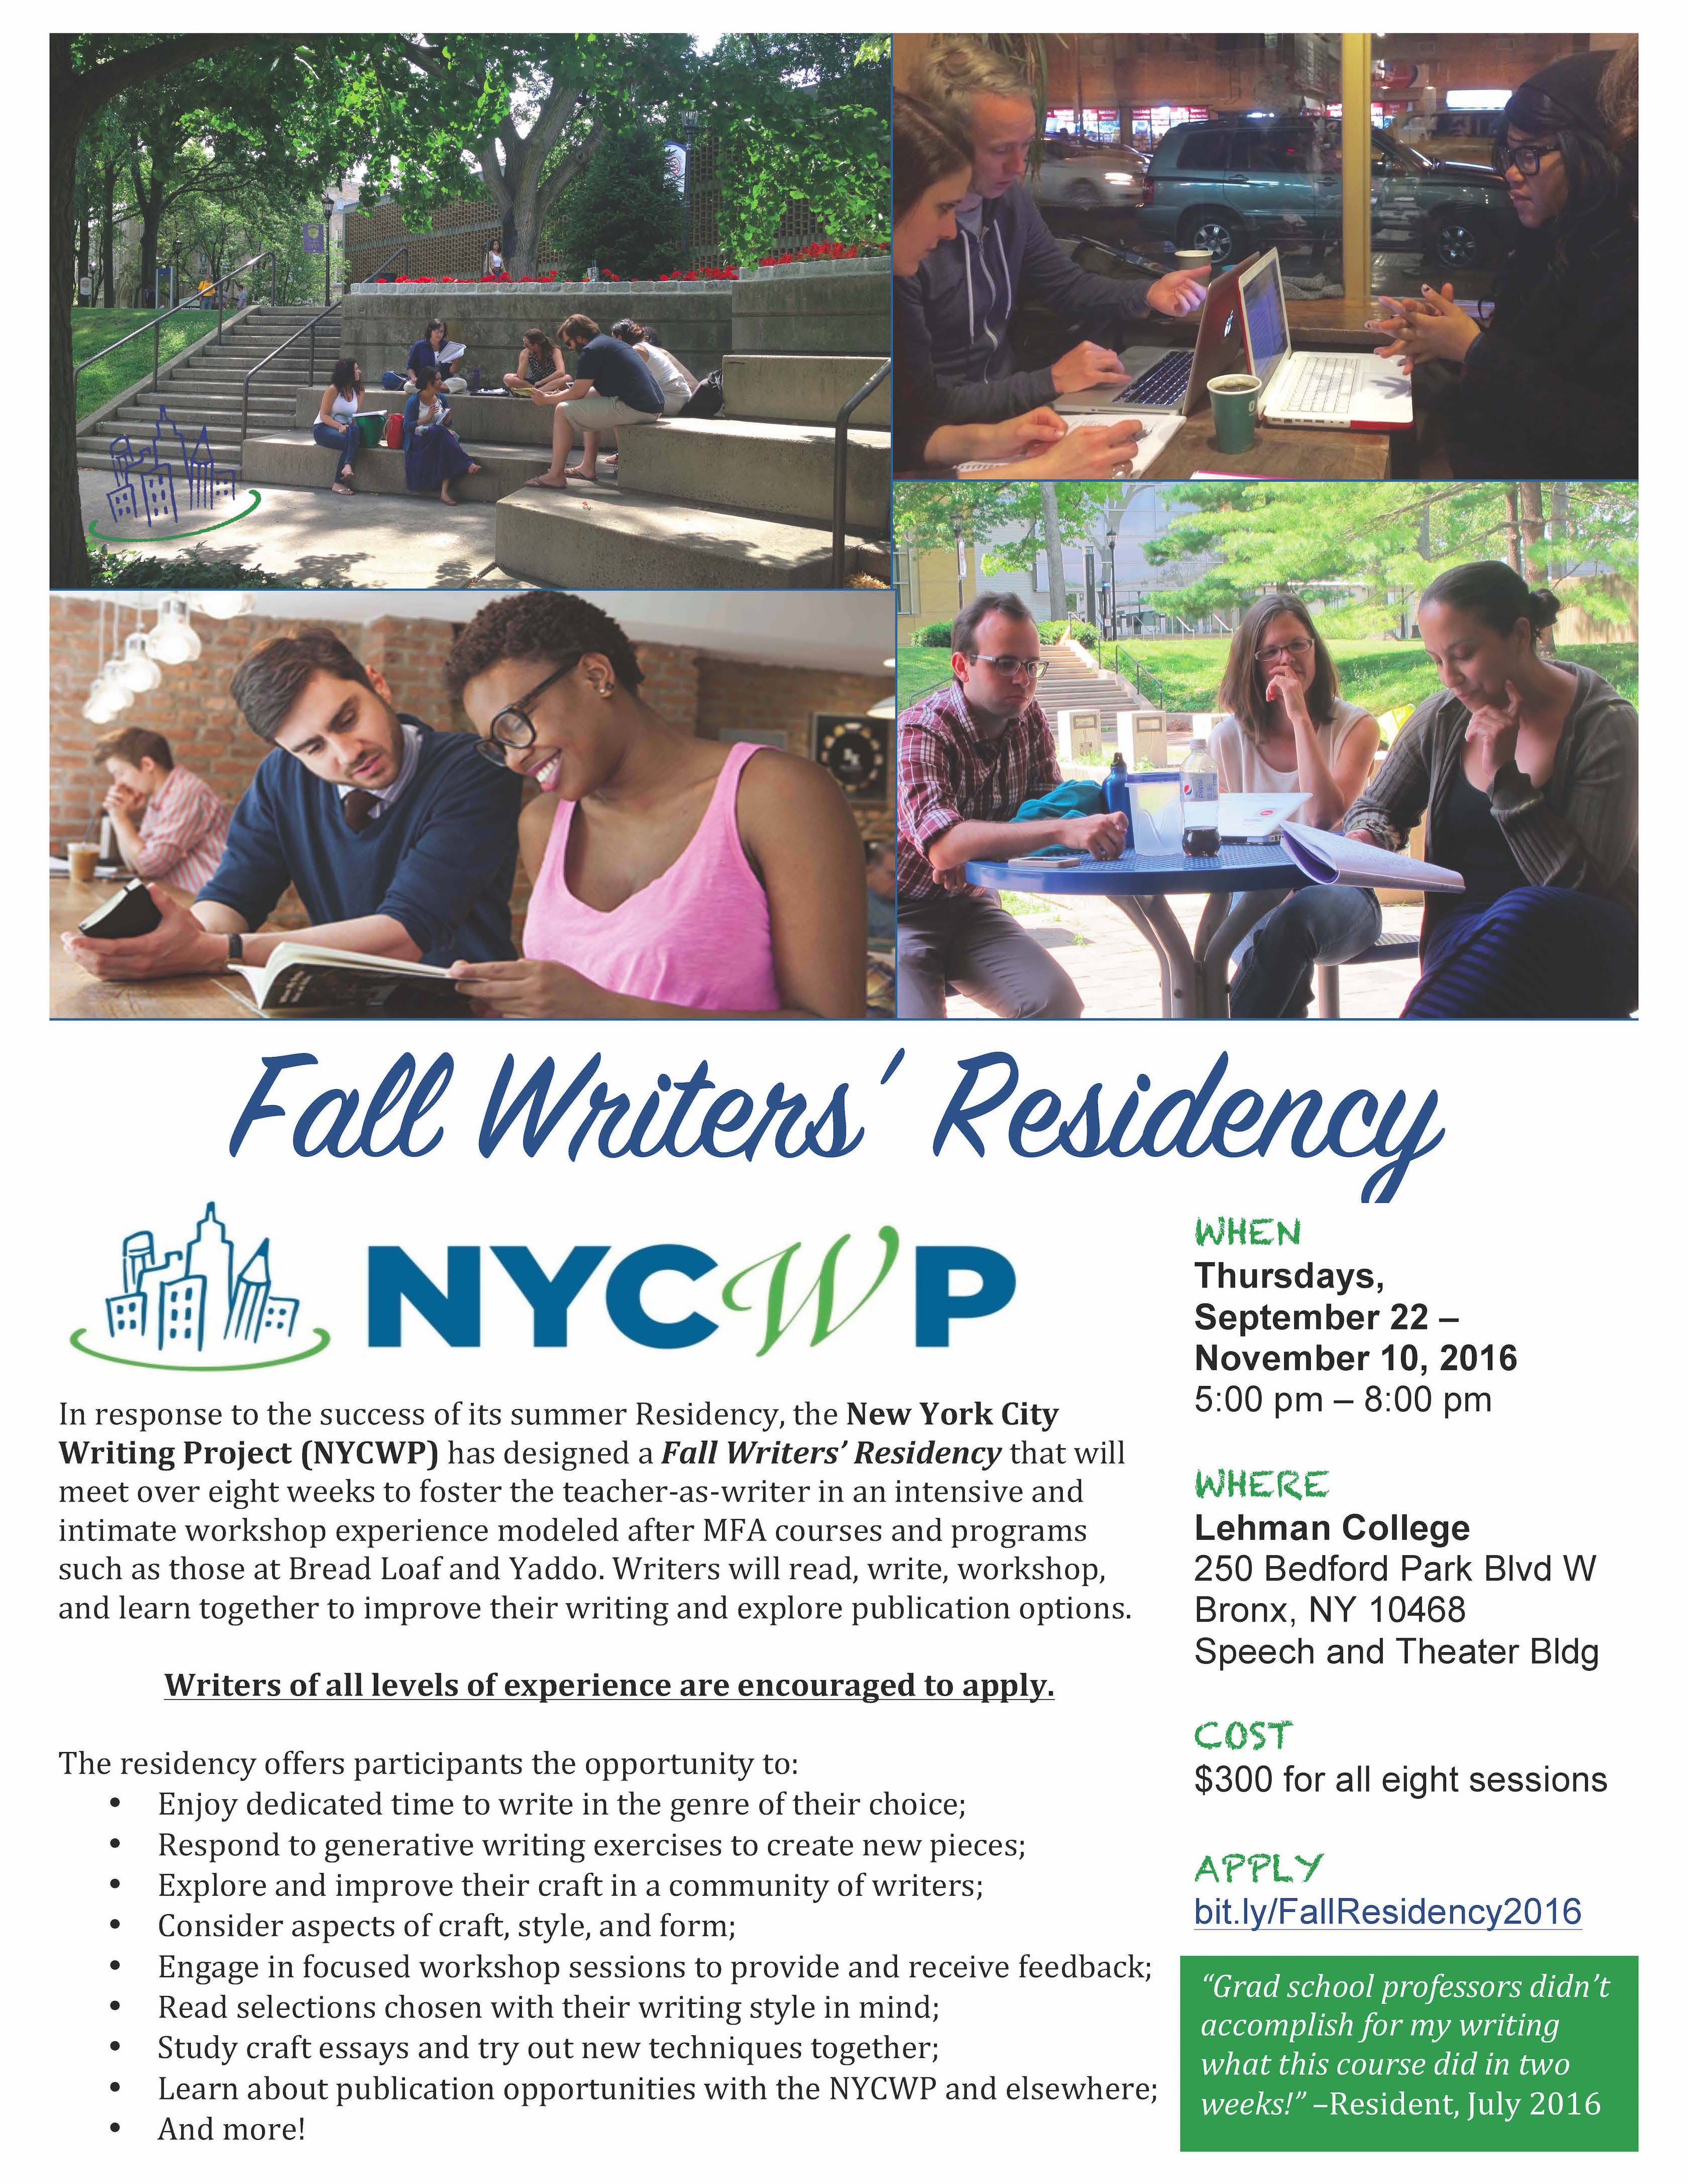 nyc writing project My career as a teacher and leader in literacy education and technology began at university heights high school with nancy mohr and ted sizer and with the new york city writing project in the 80's and 90's after teaching at university heights for a dozen years, principal eric nadelstern invited me to teach english.